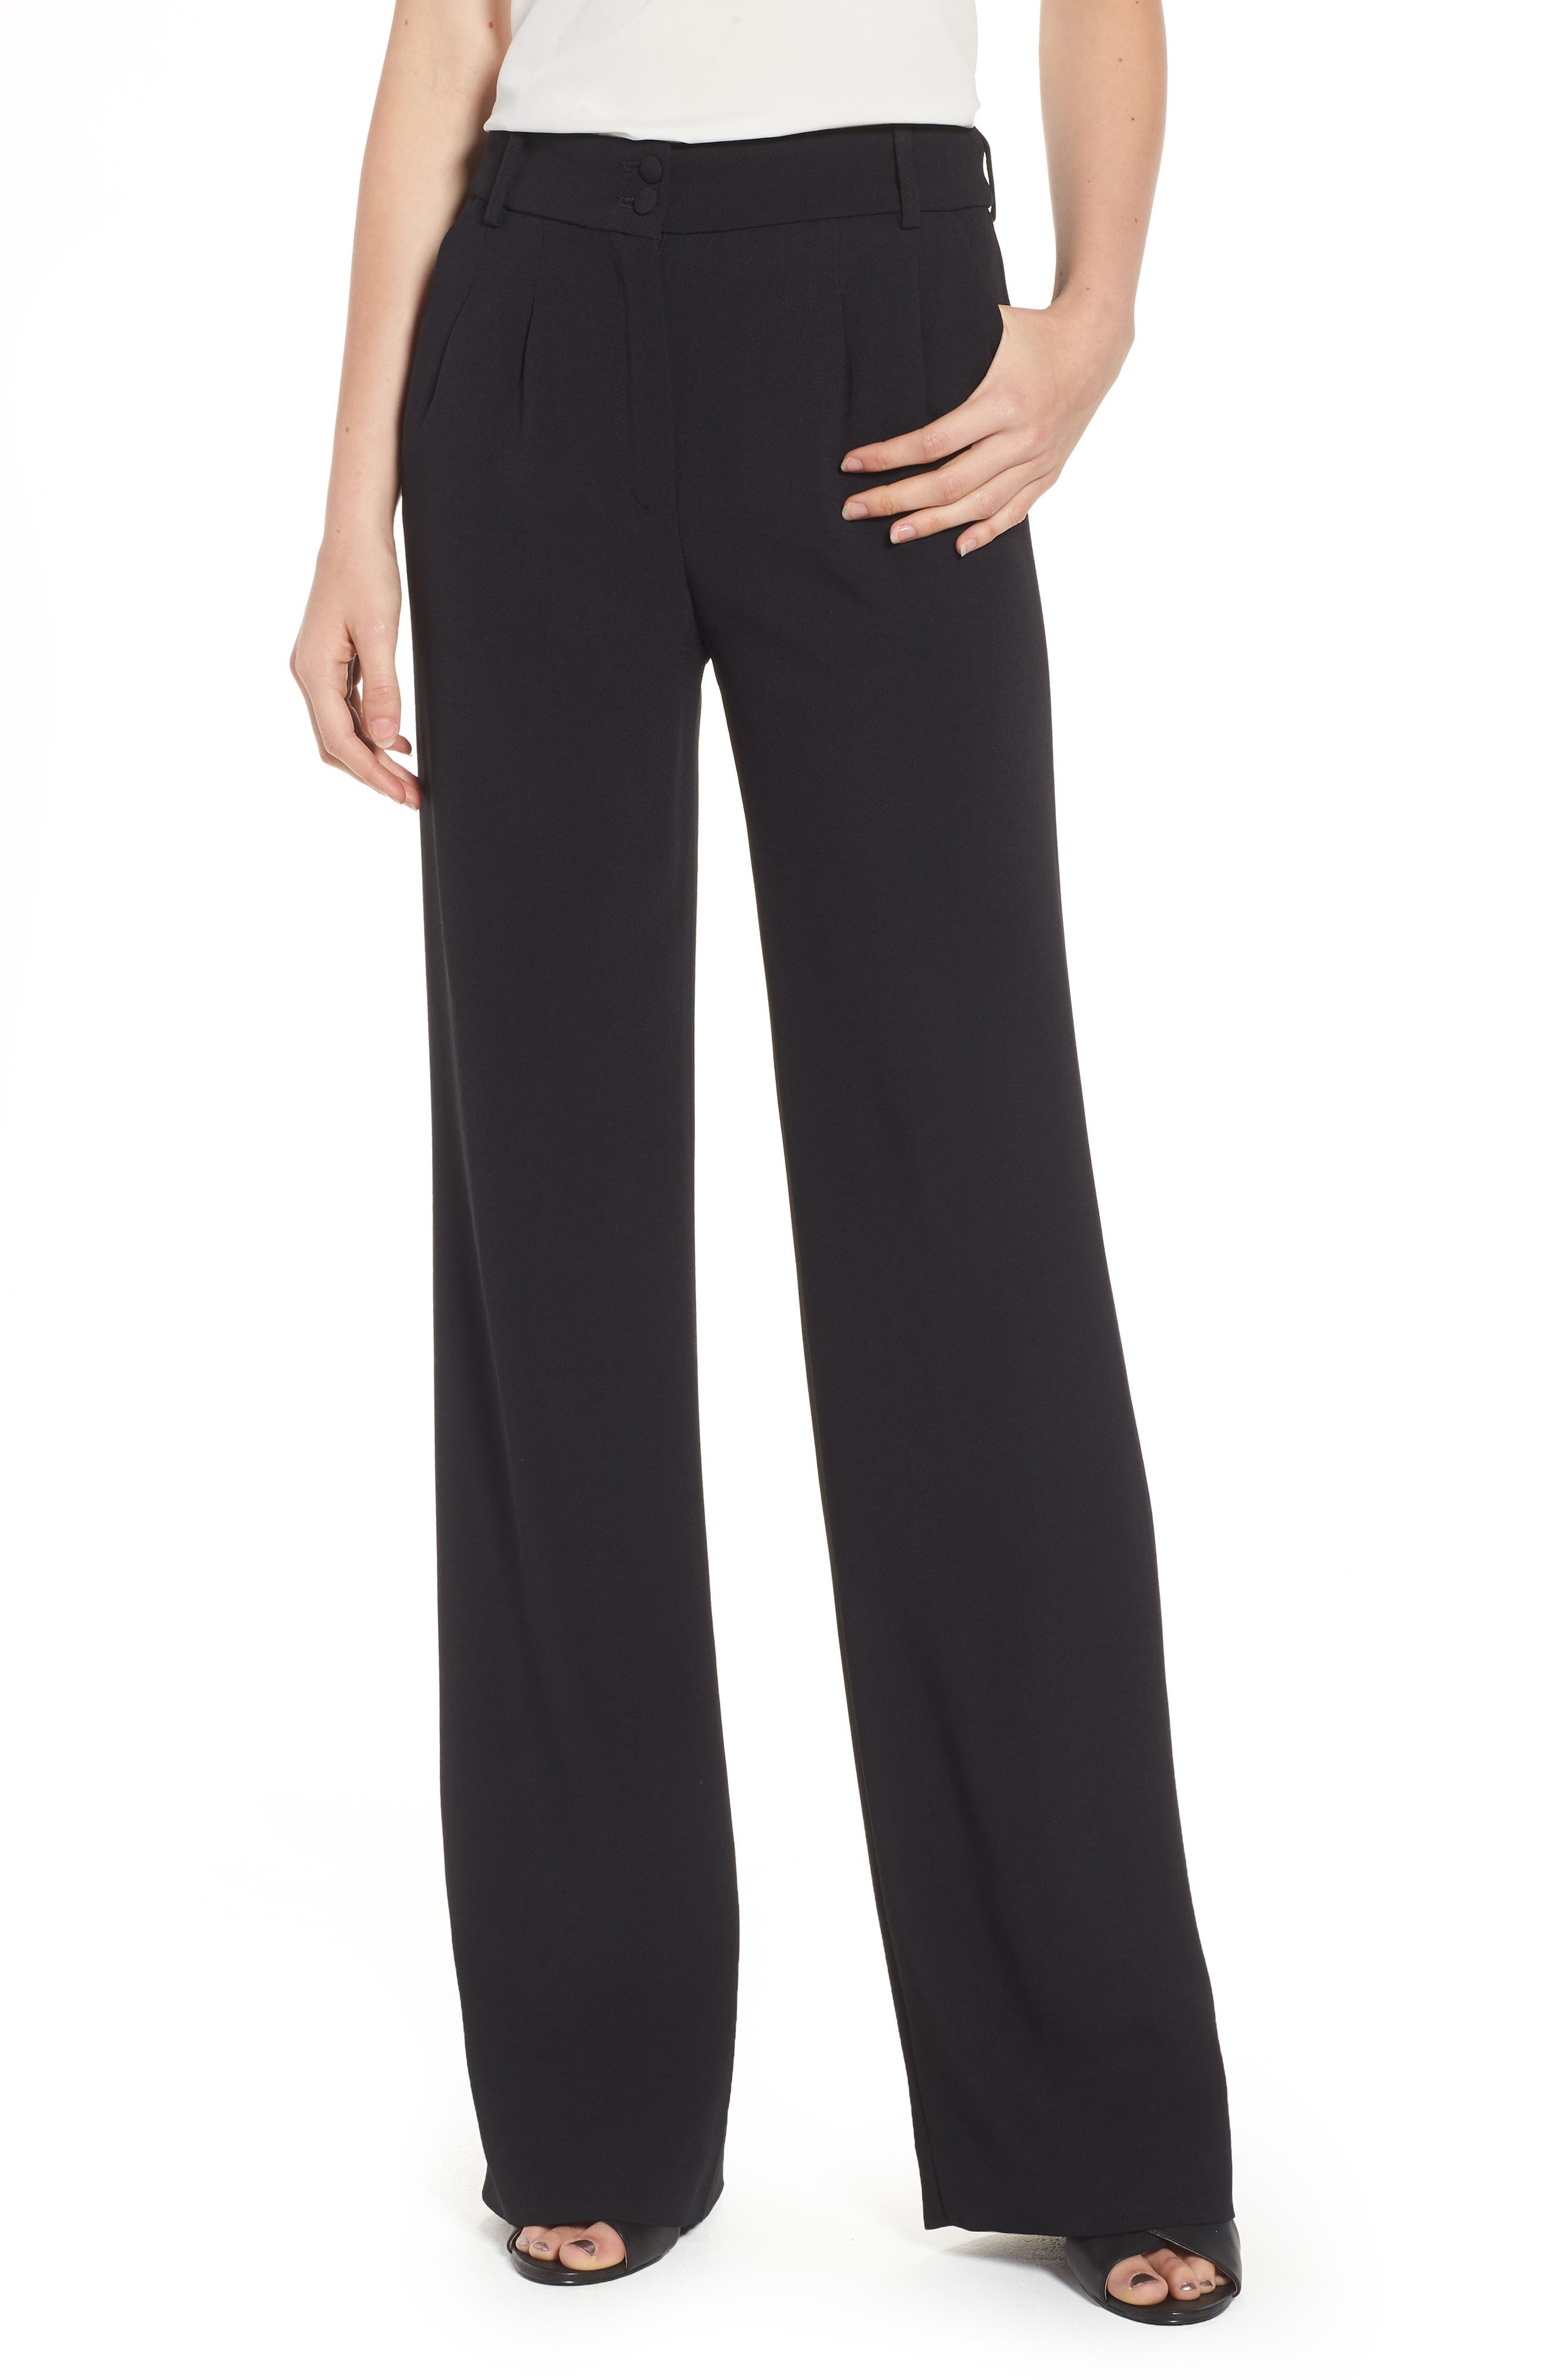 Théofil Silk Trousers,                         Main,                         color, 001